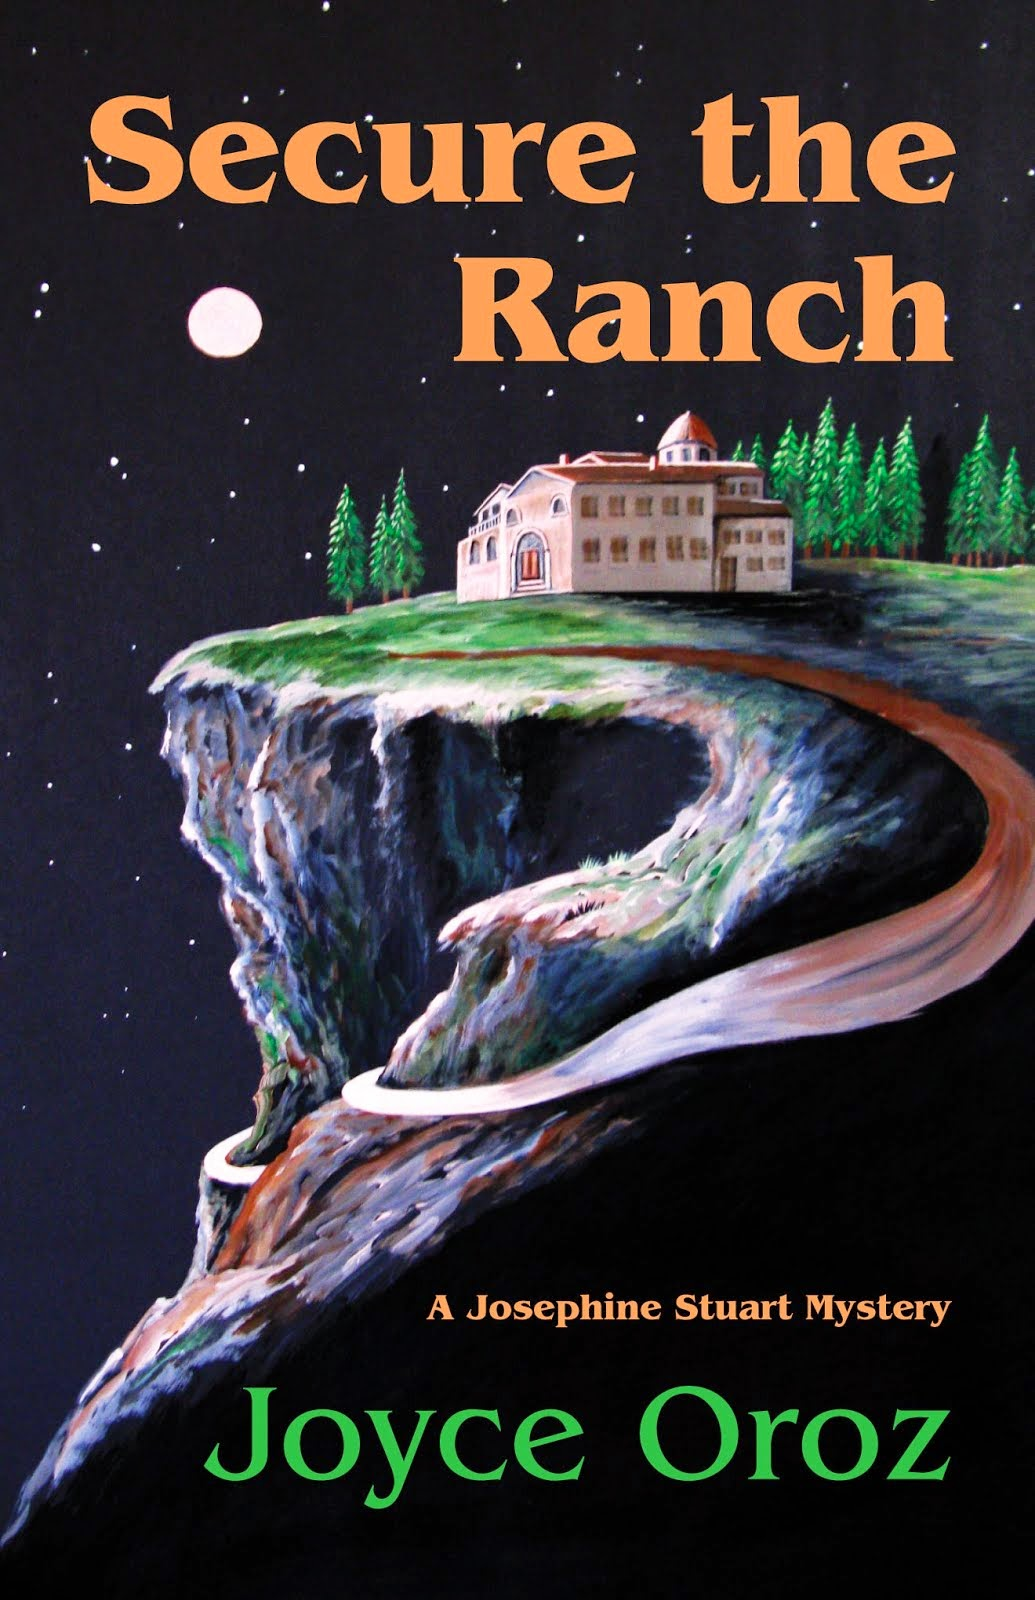 Secure the Ranch, first novel in the Josephine Stuart Mystery Series